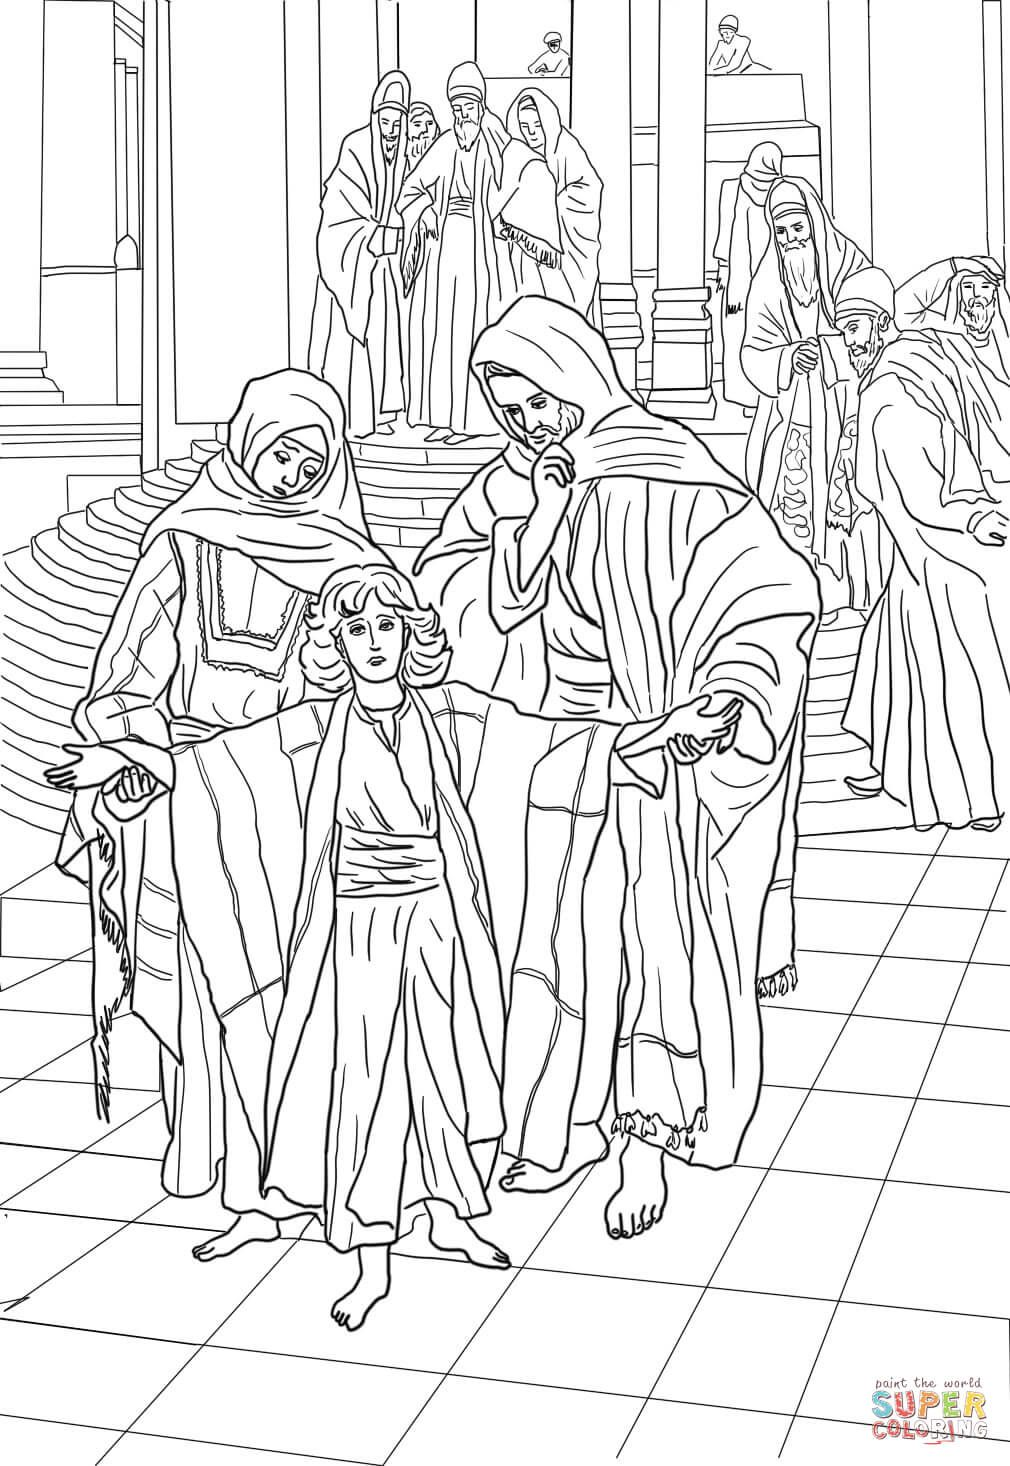 12-year-old-jesus-found-in-the-temple-by-james-tissot-coloring-page ...